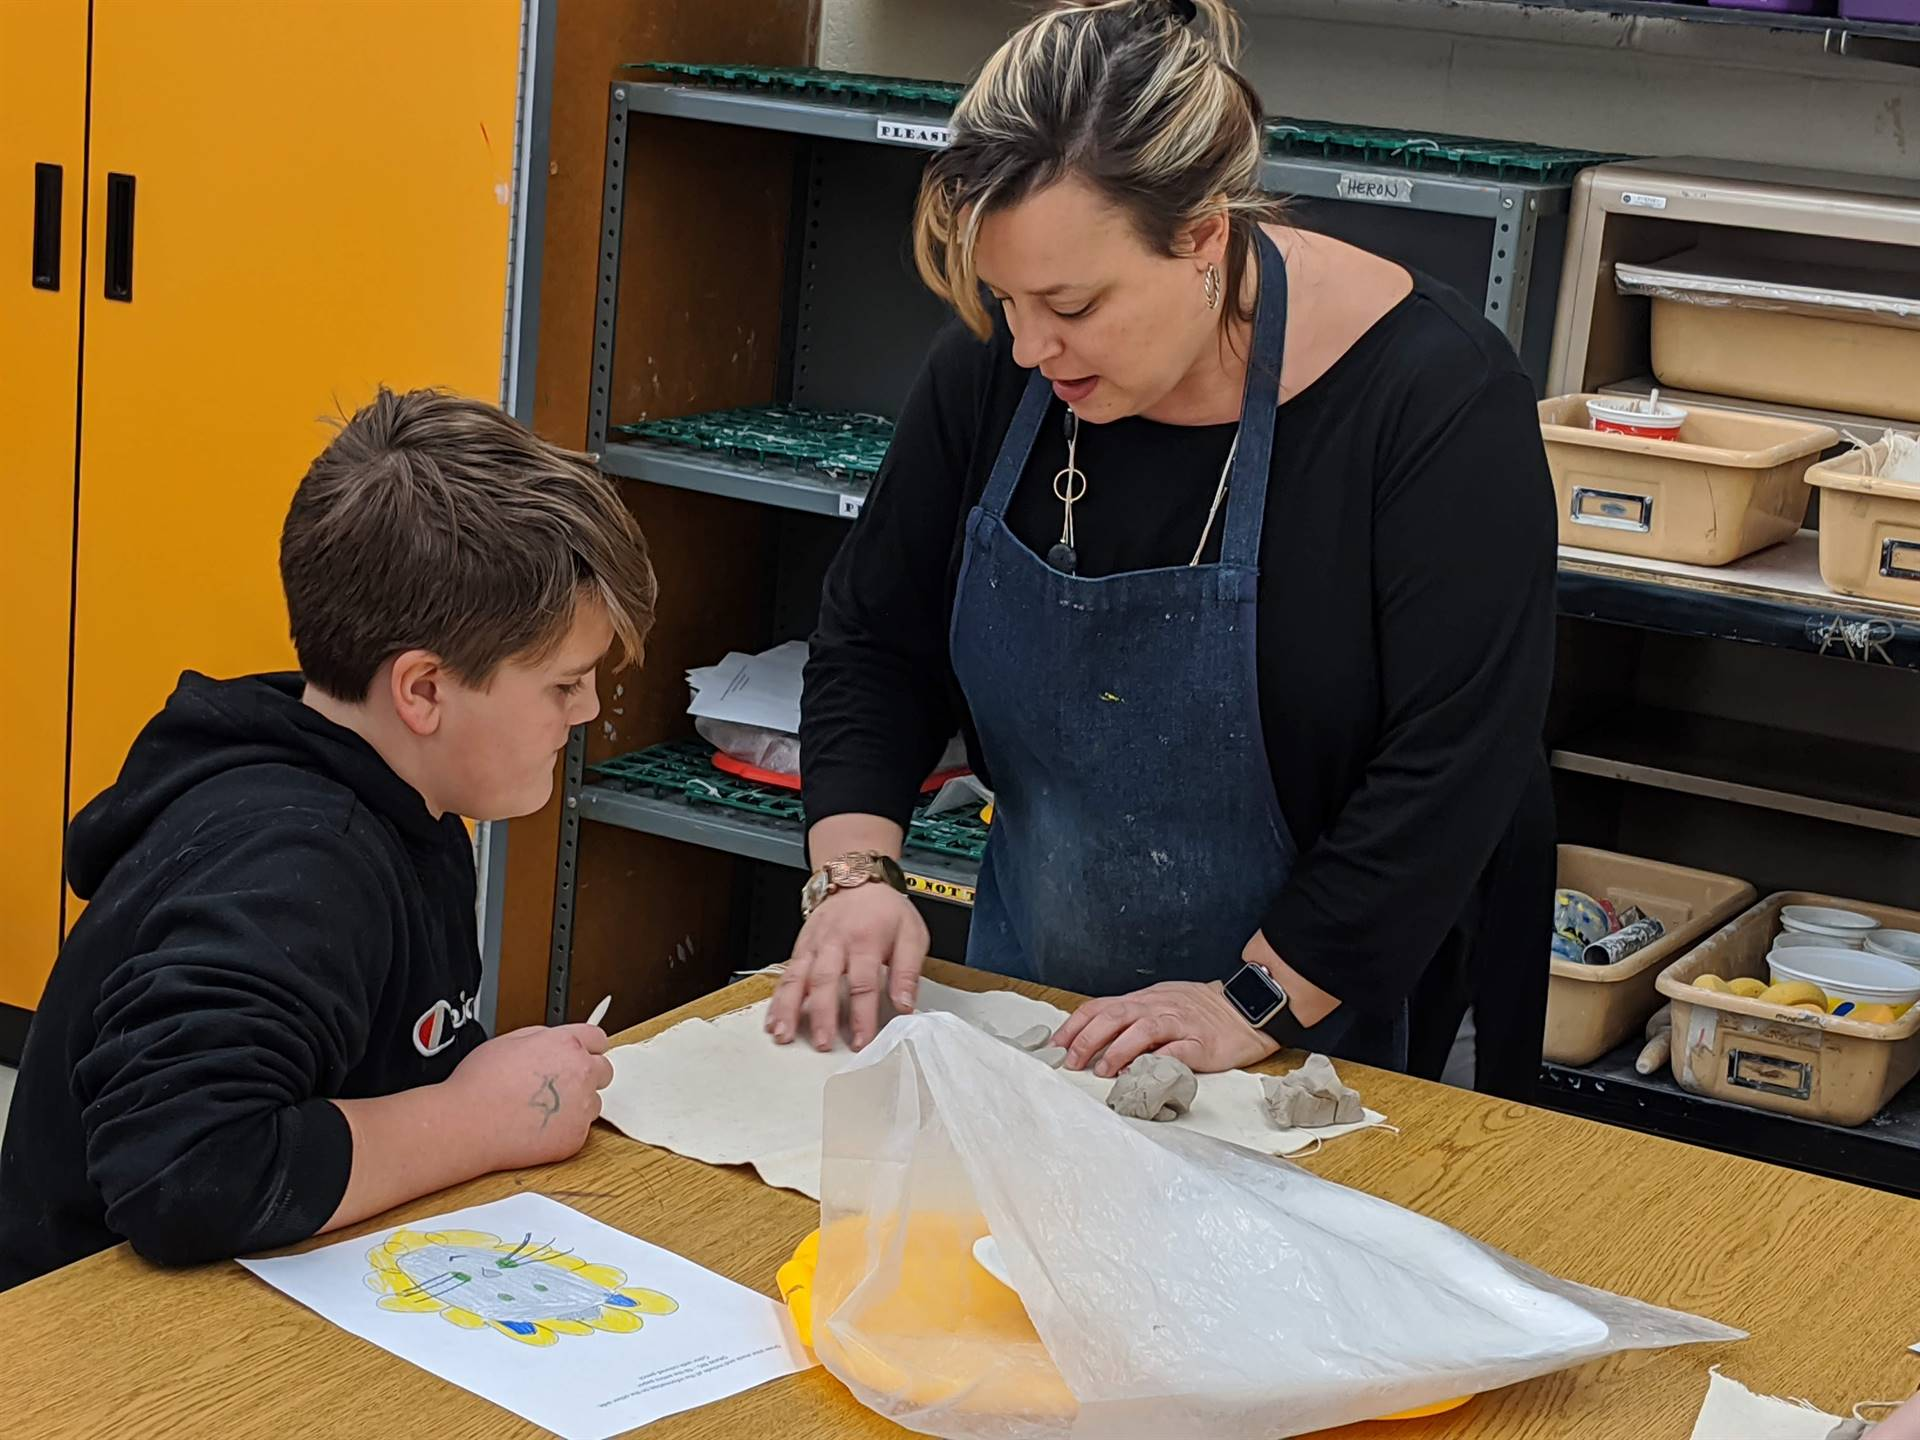 Photo 4:  CMS art teacher Ms. Heron assisting a student with his art project.